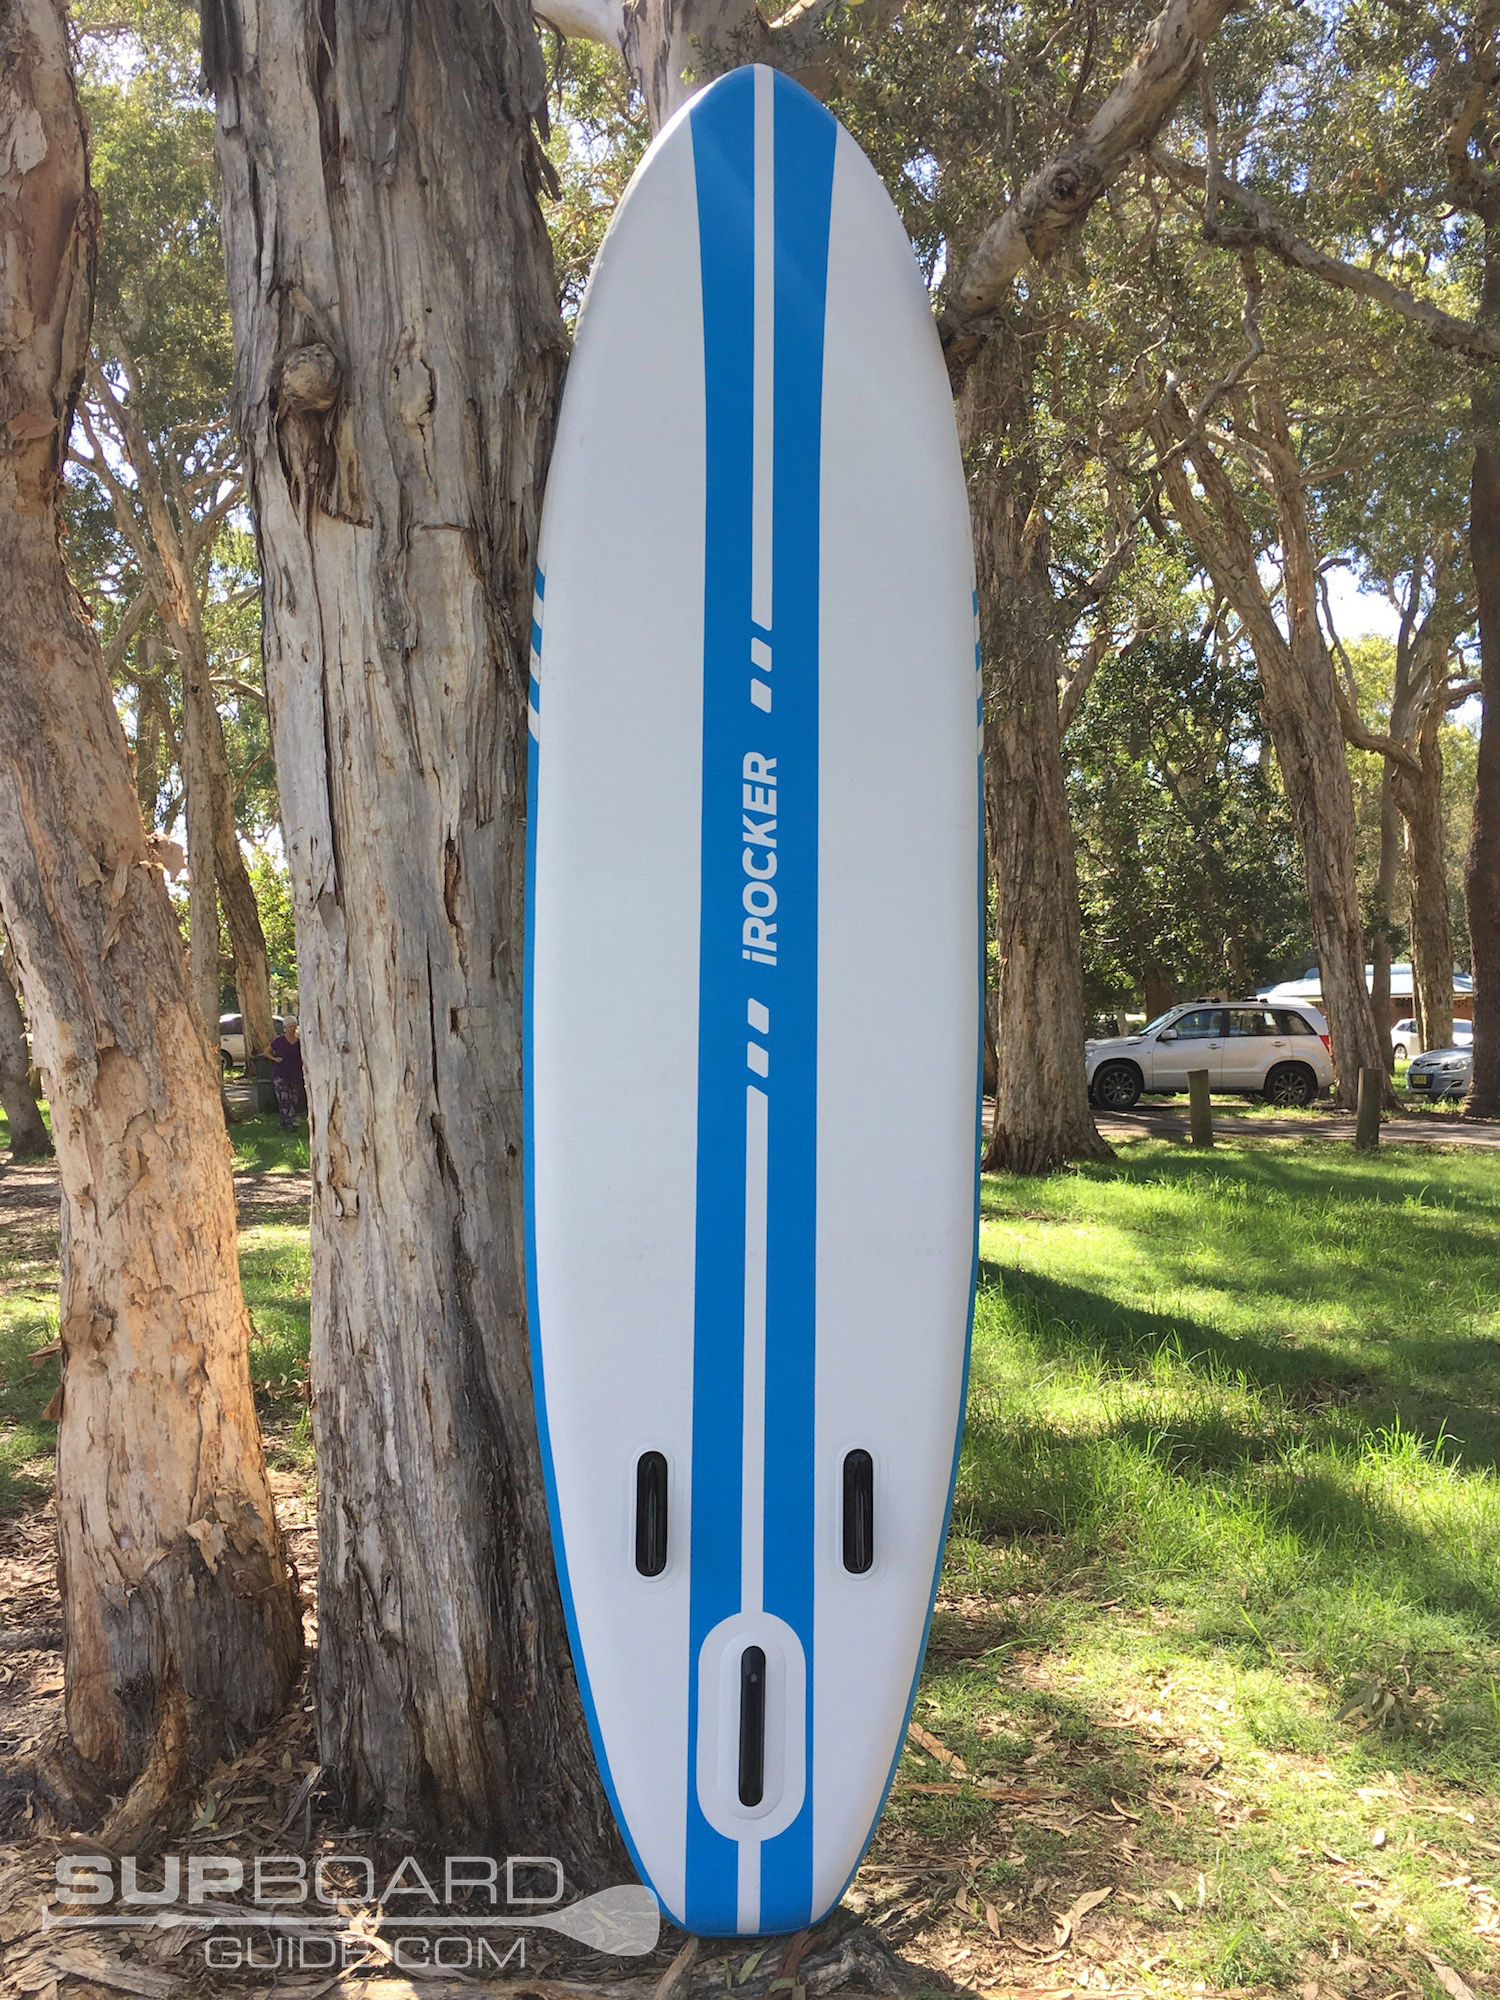 Blue and White SUP Board